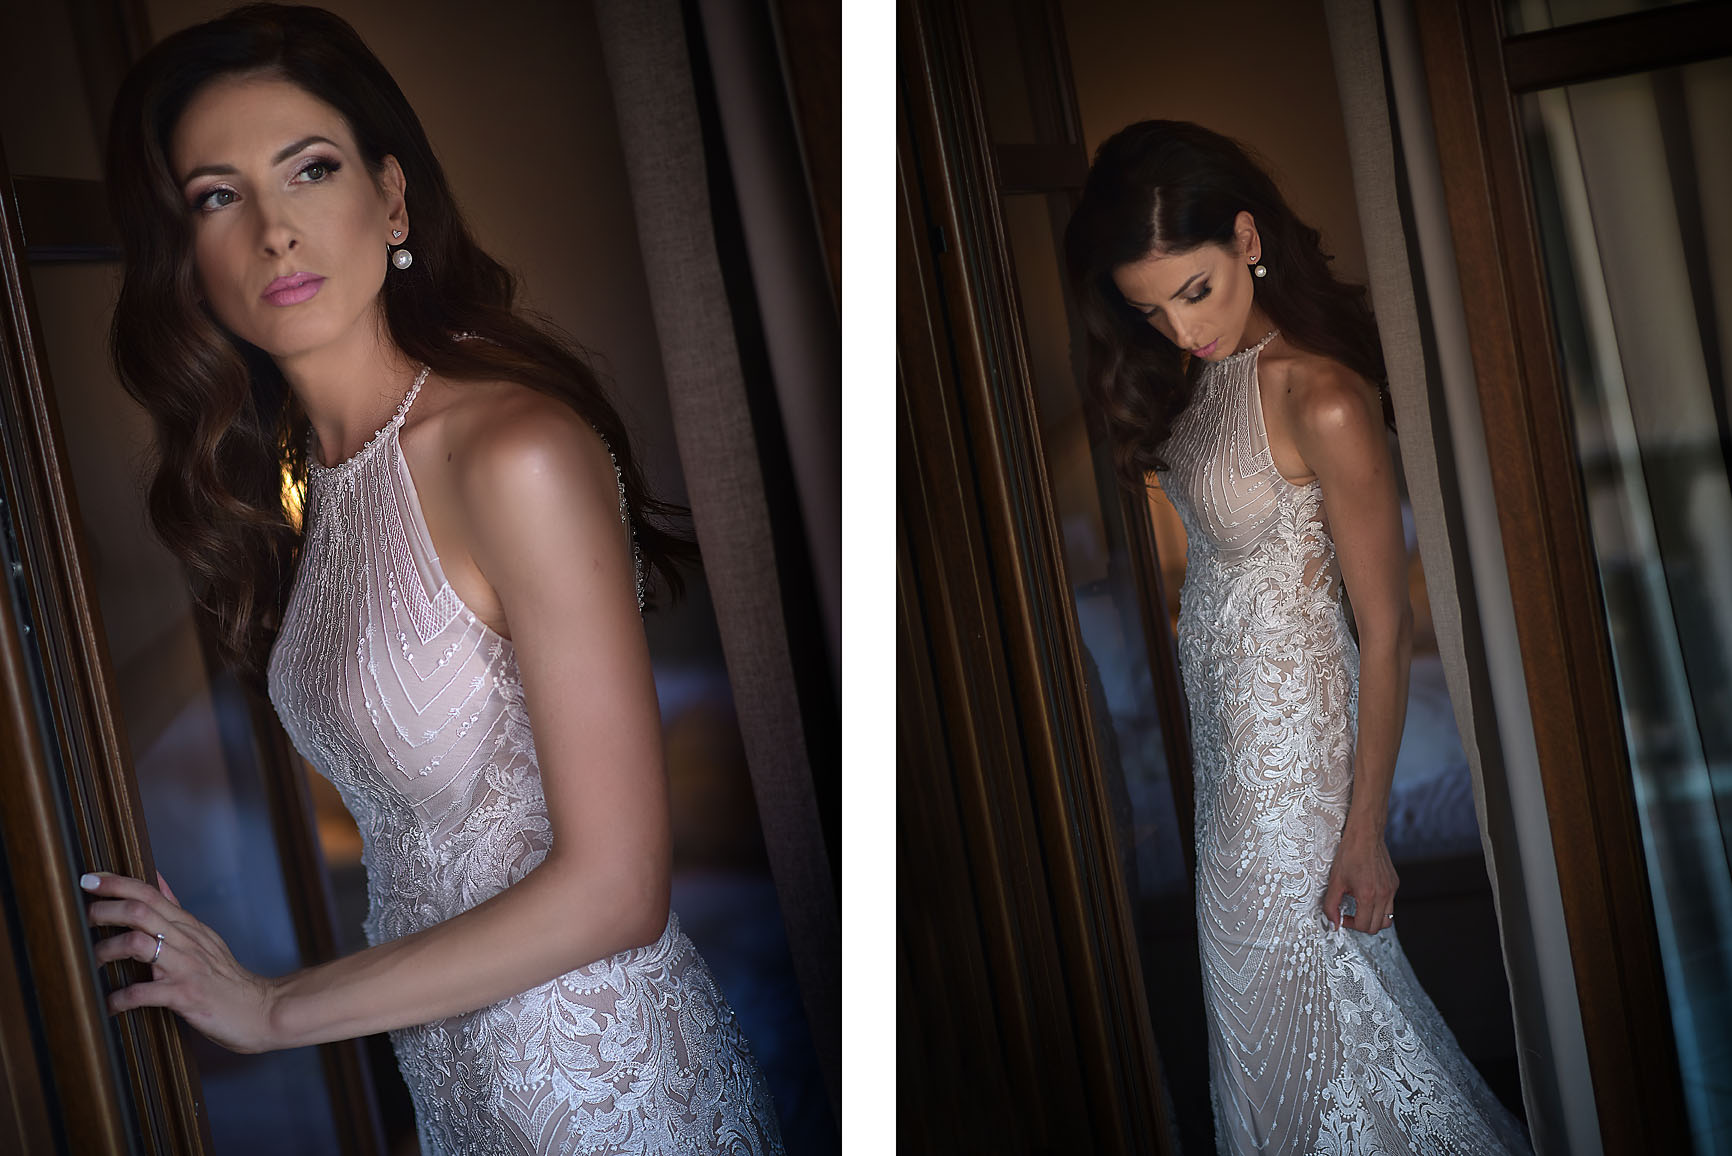 wedding-dress-bride-preparation-hotel-kazarma-limni-plastira-01